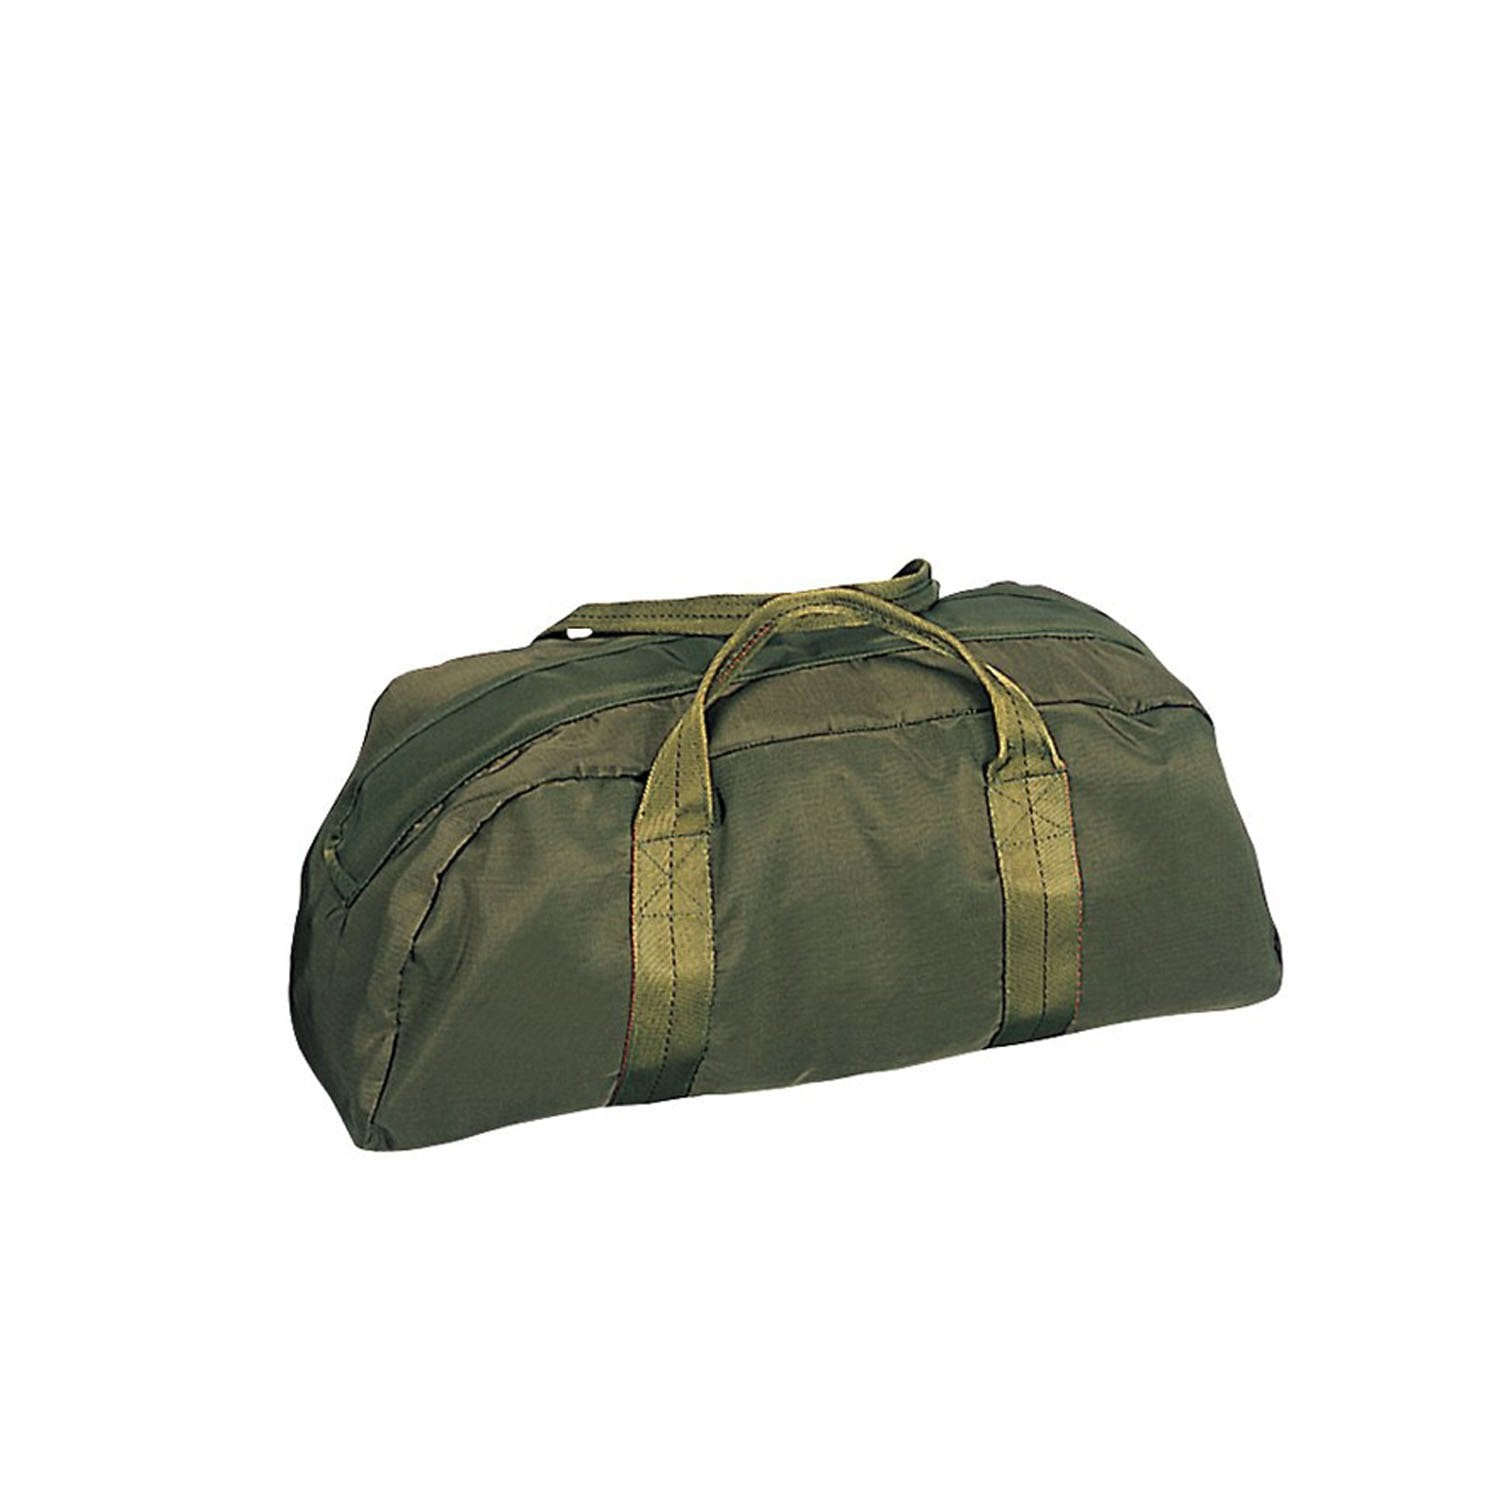 G.I. Plus Tanker Tool Bag